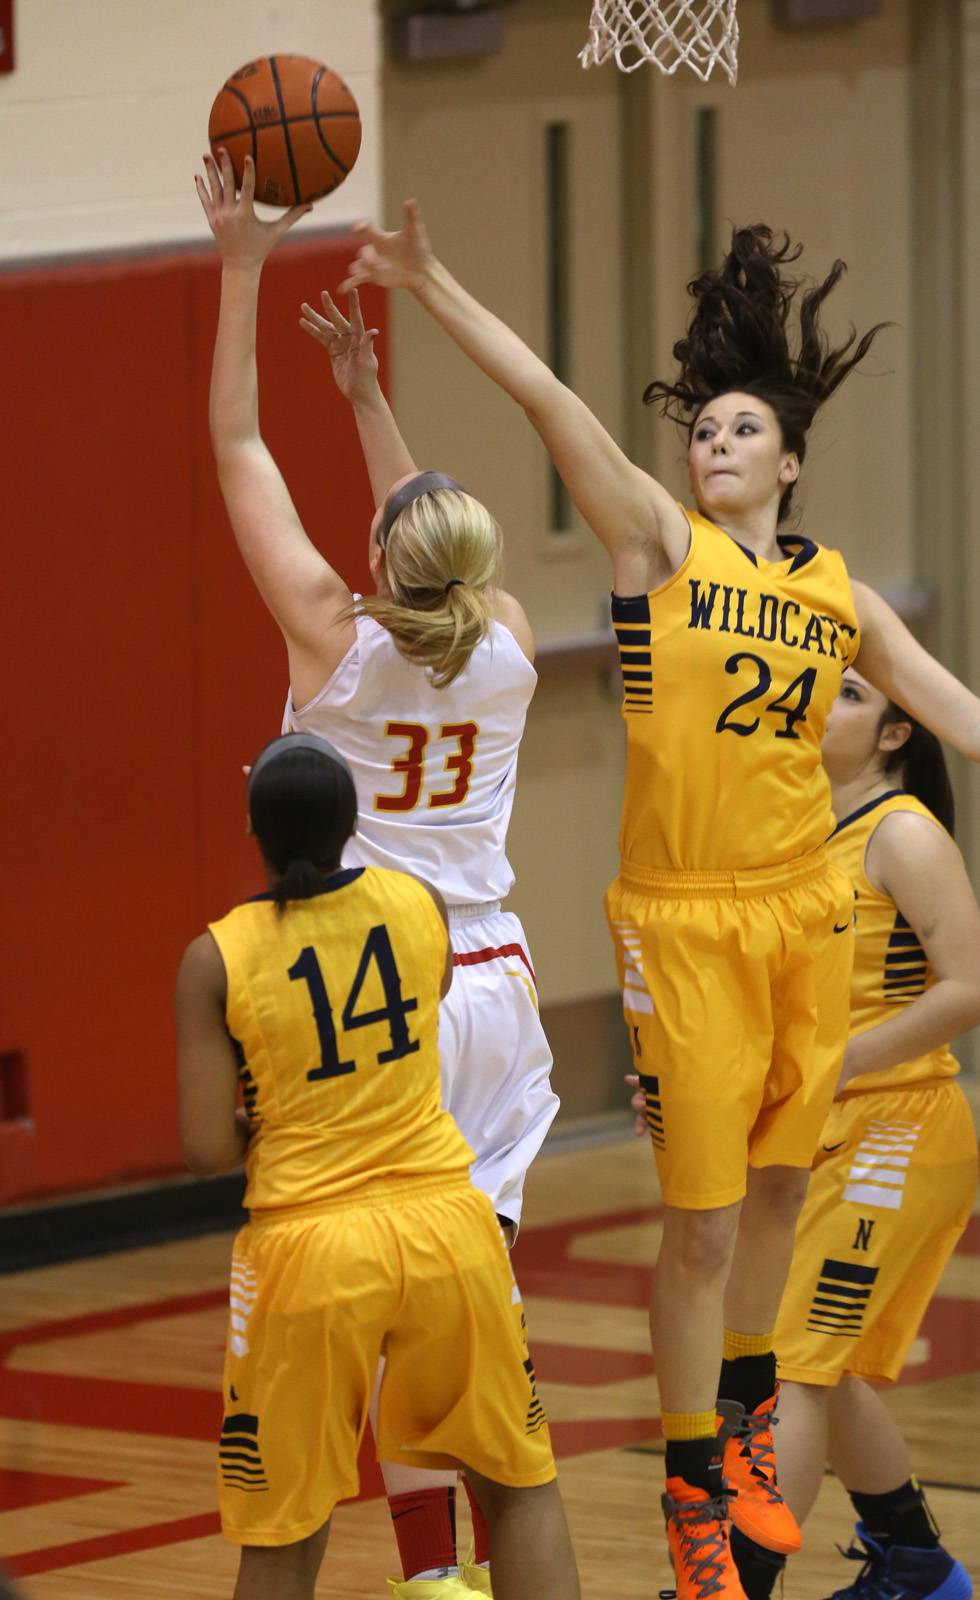 Erin Bayram goes up for 2 of her 16 points against Neuqua Valley's Bryce Menendez Friday in Batavia.